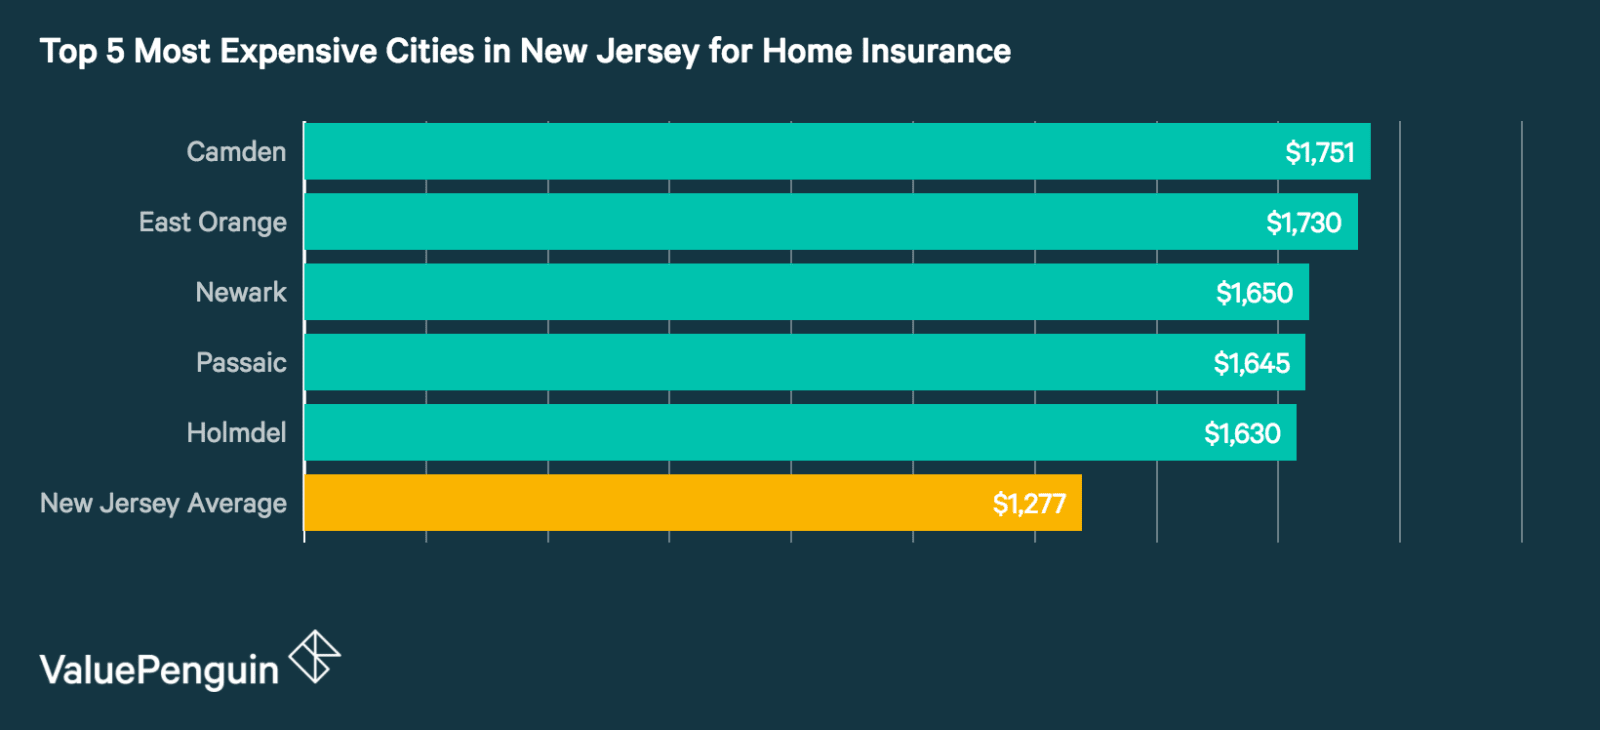 Top 5 Most Expensive Cities in New Jersey for Homeowners Insurance